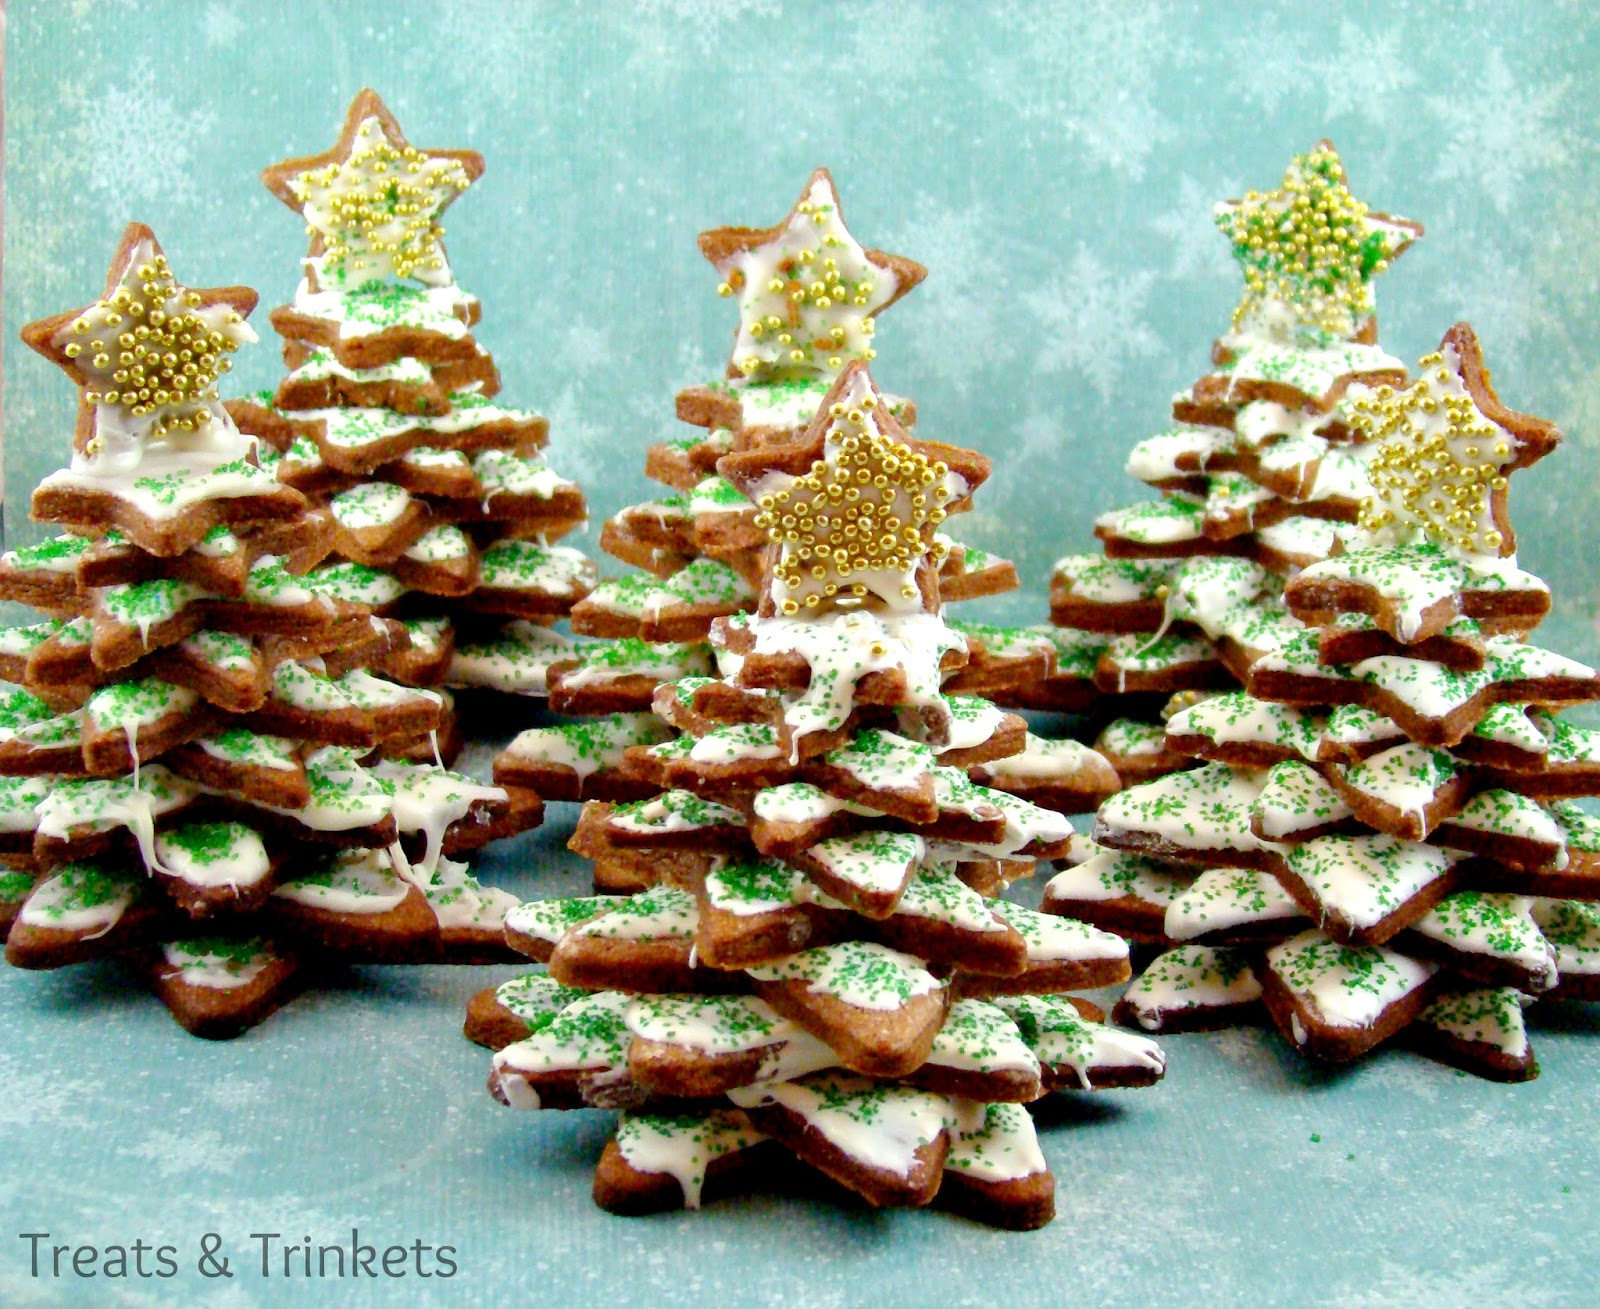 Treats & Trinkets: Christmas Tree Cookie Stacks & the Year in Review